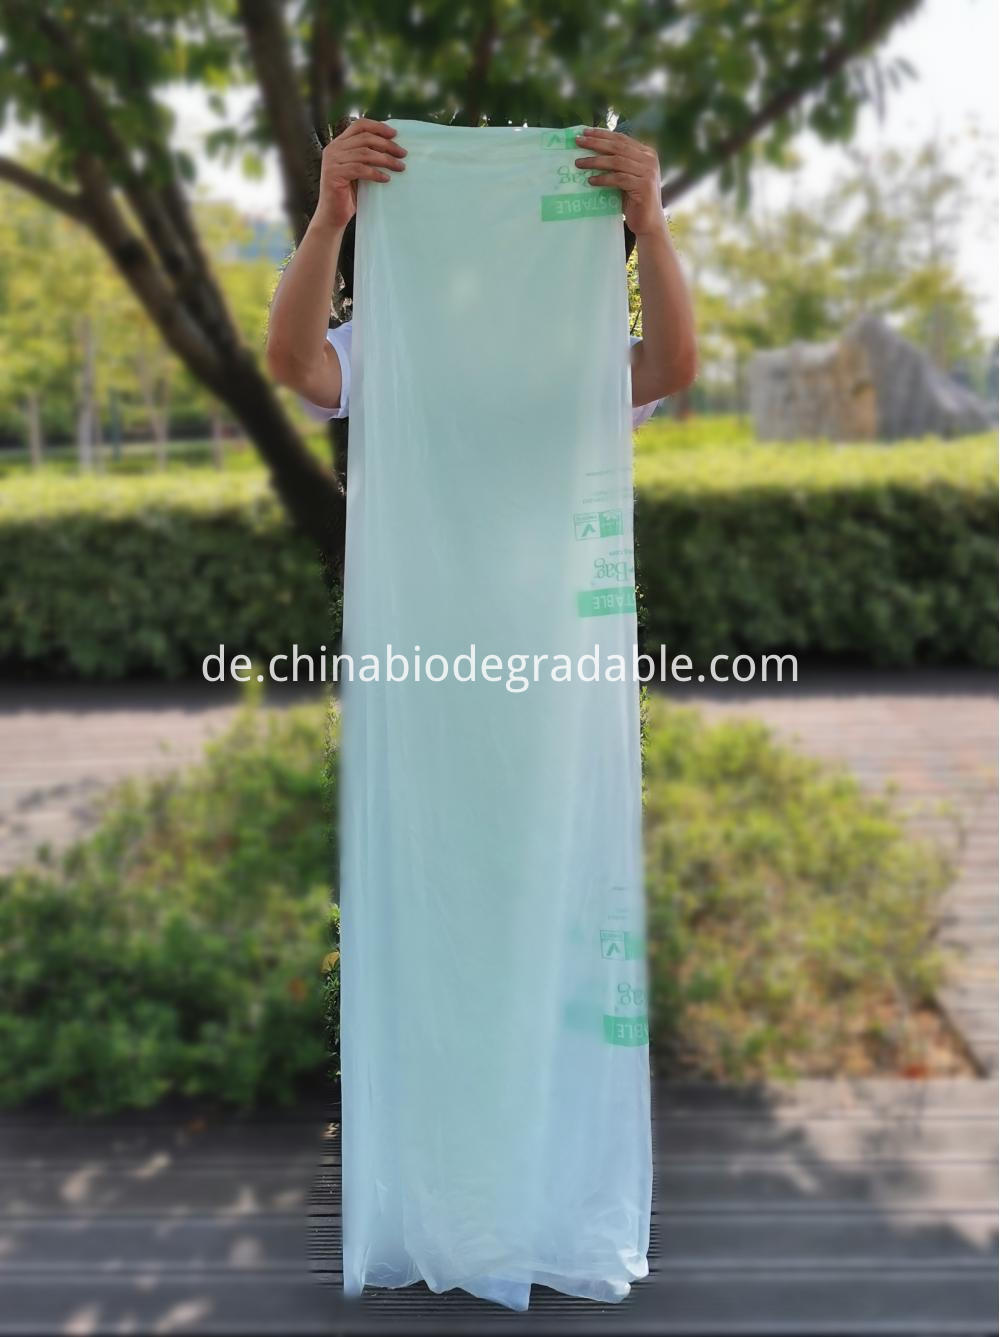 Biodegradable High Strength Biggest Bags Outdoor Trash Bags